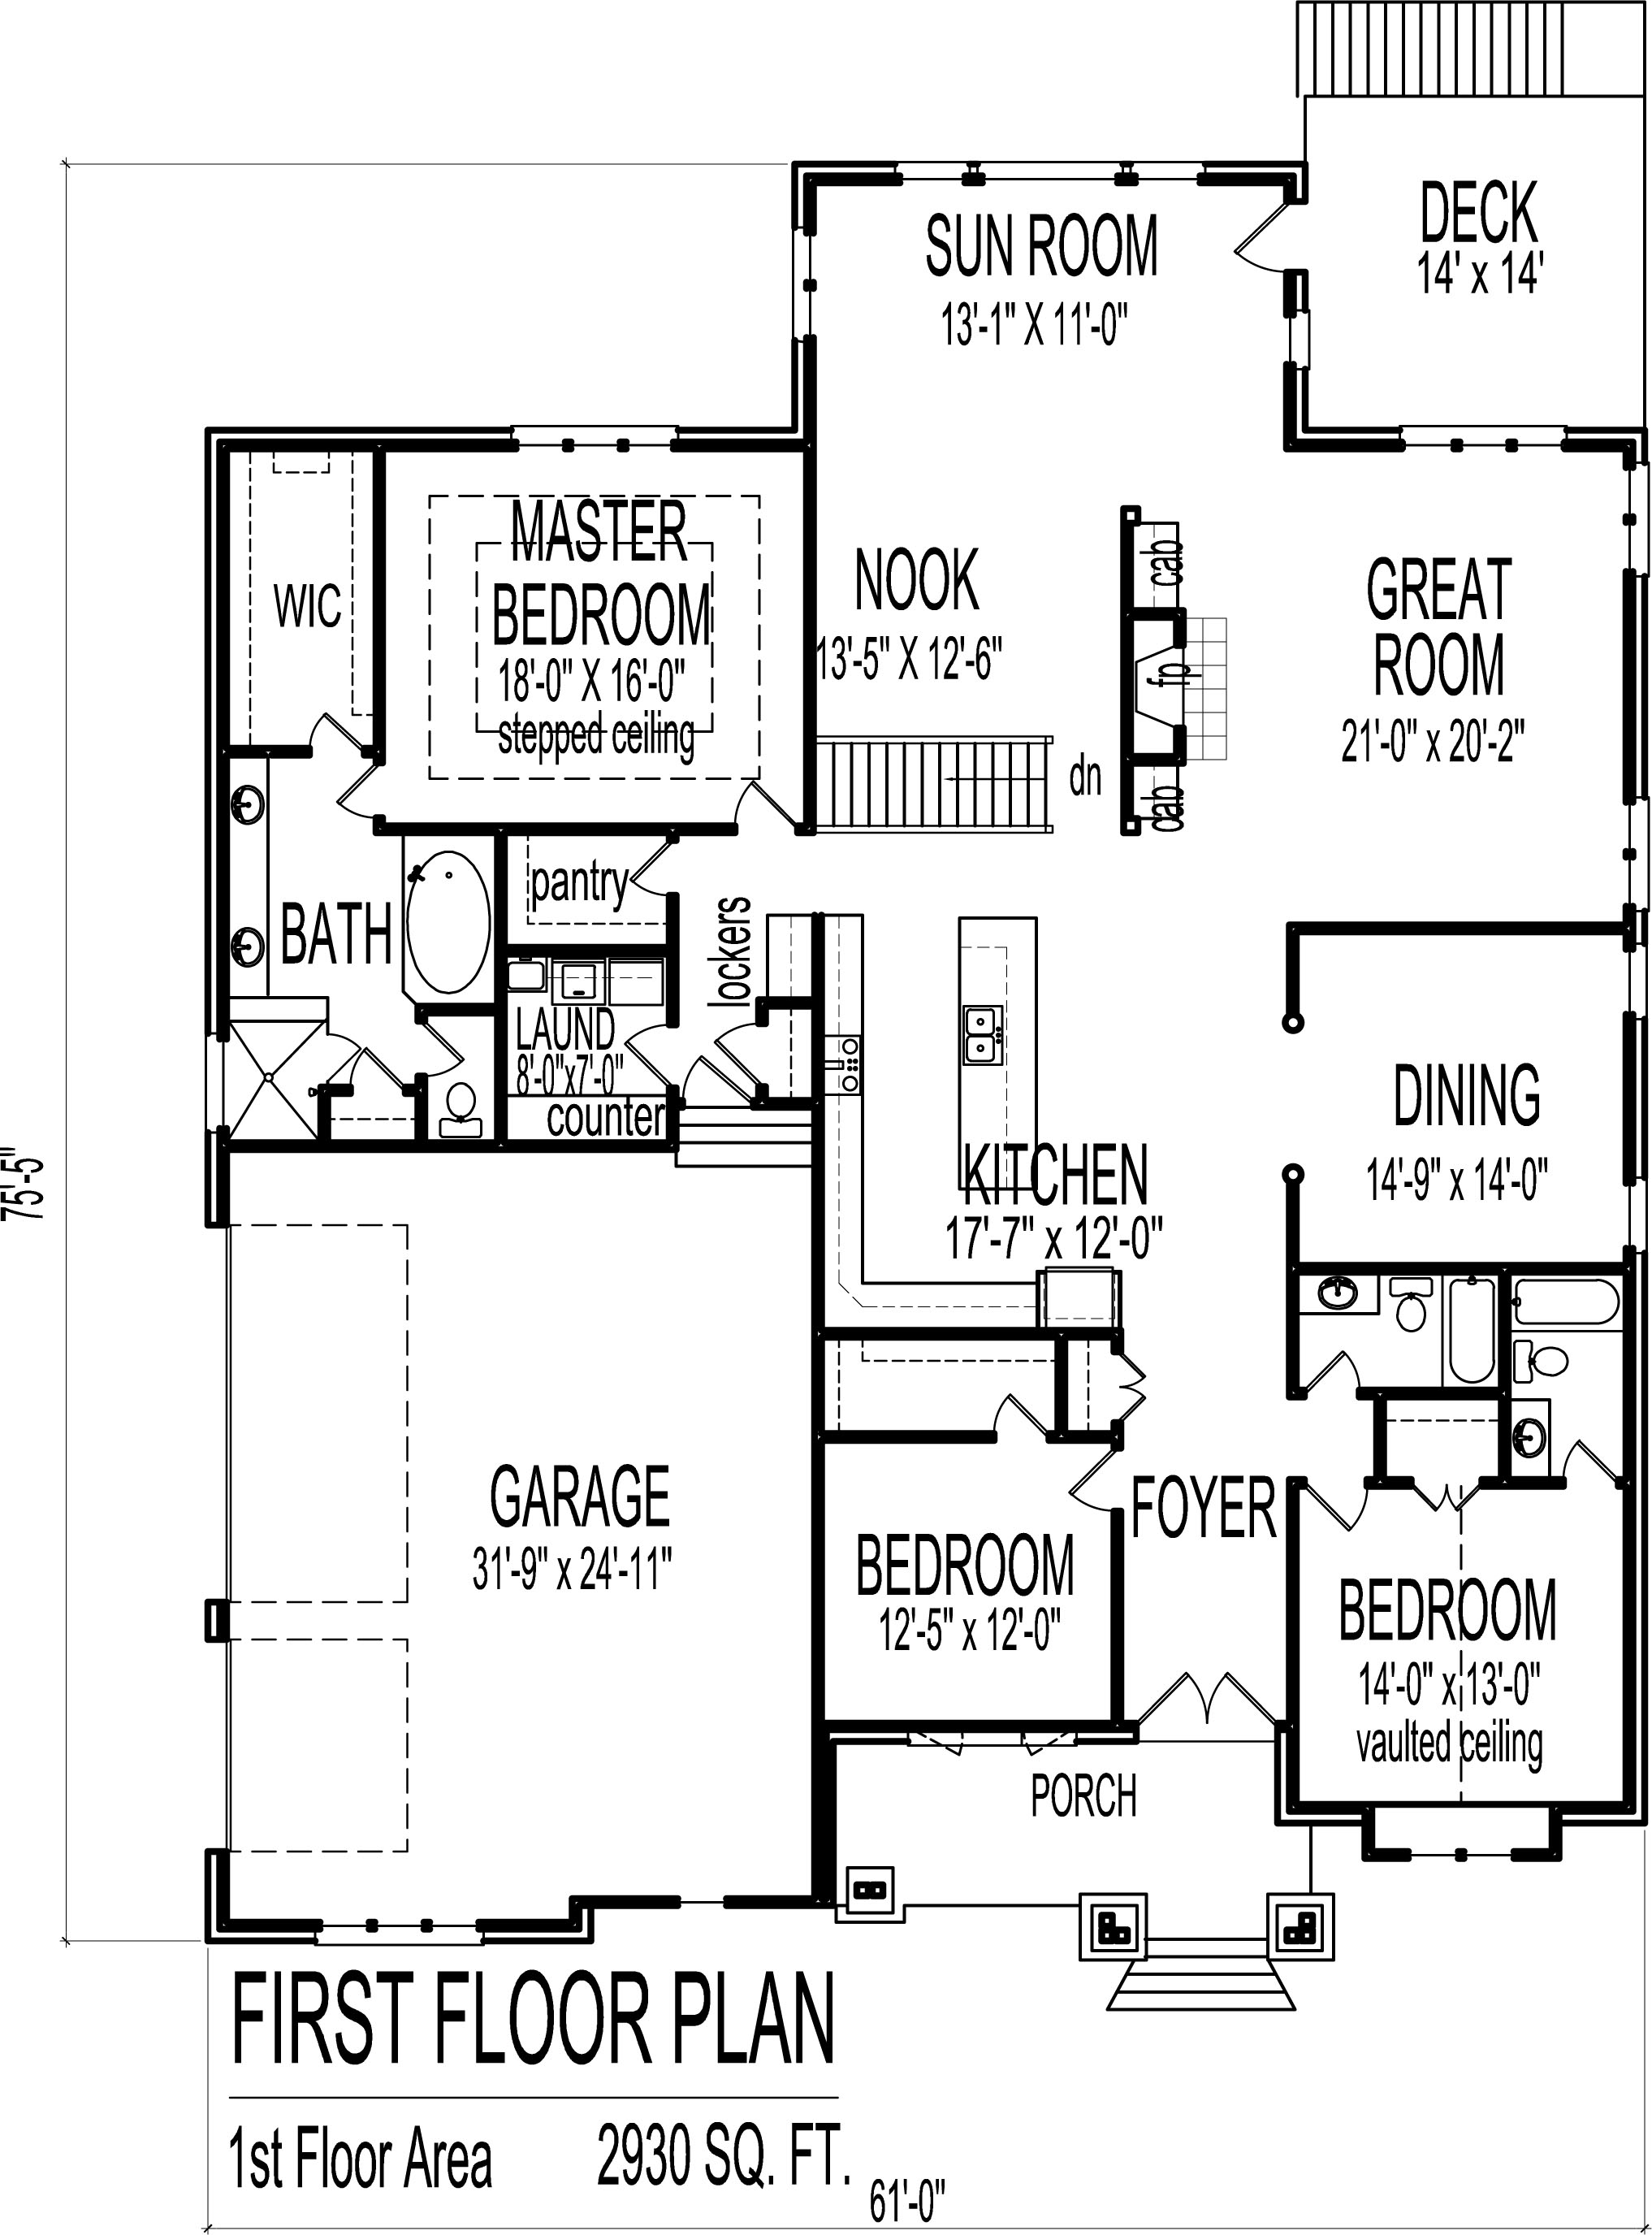 Simple House Drawing at GetDrawings.com | Free for personal ... on simple ranch house plan, munster tv show house plan, dreamhouse kings house plan, custom dream house plan, best little house plan, 2011 hgtv dream home floor plan,